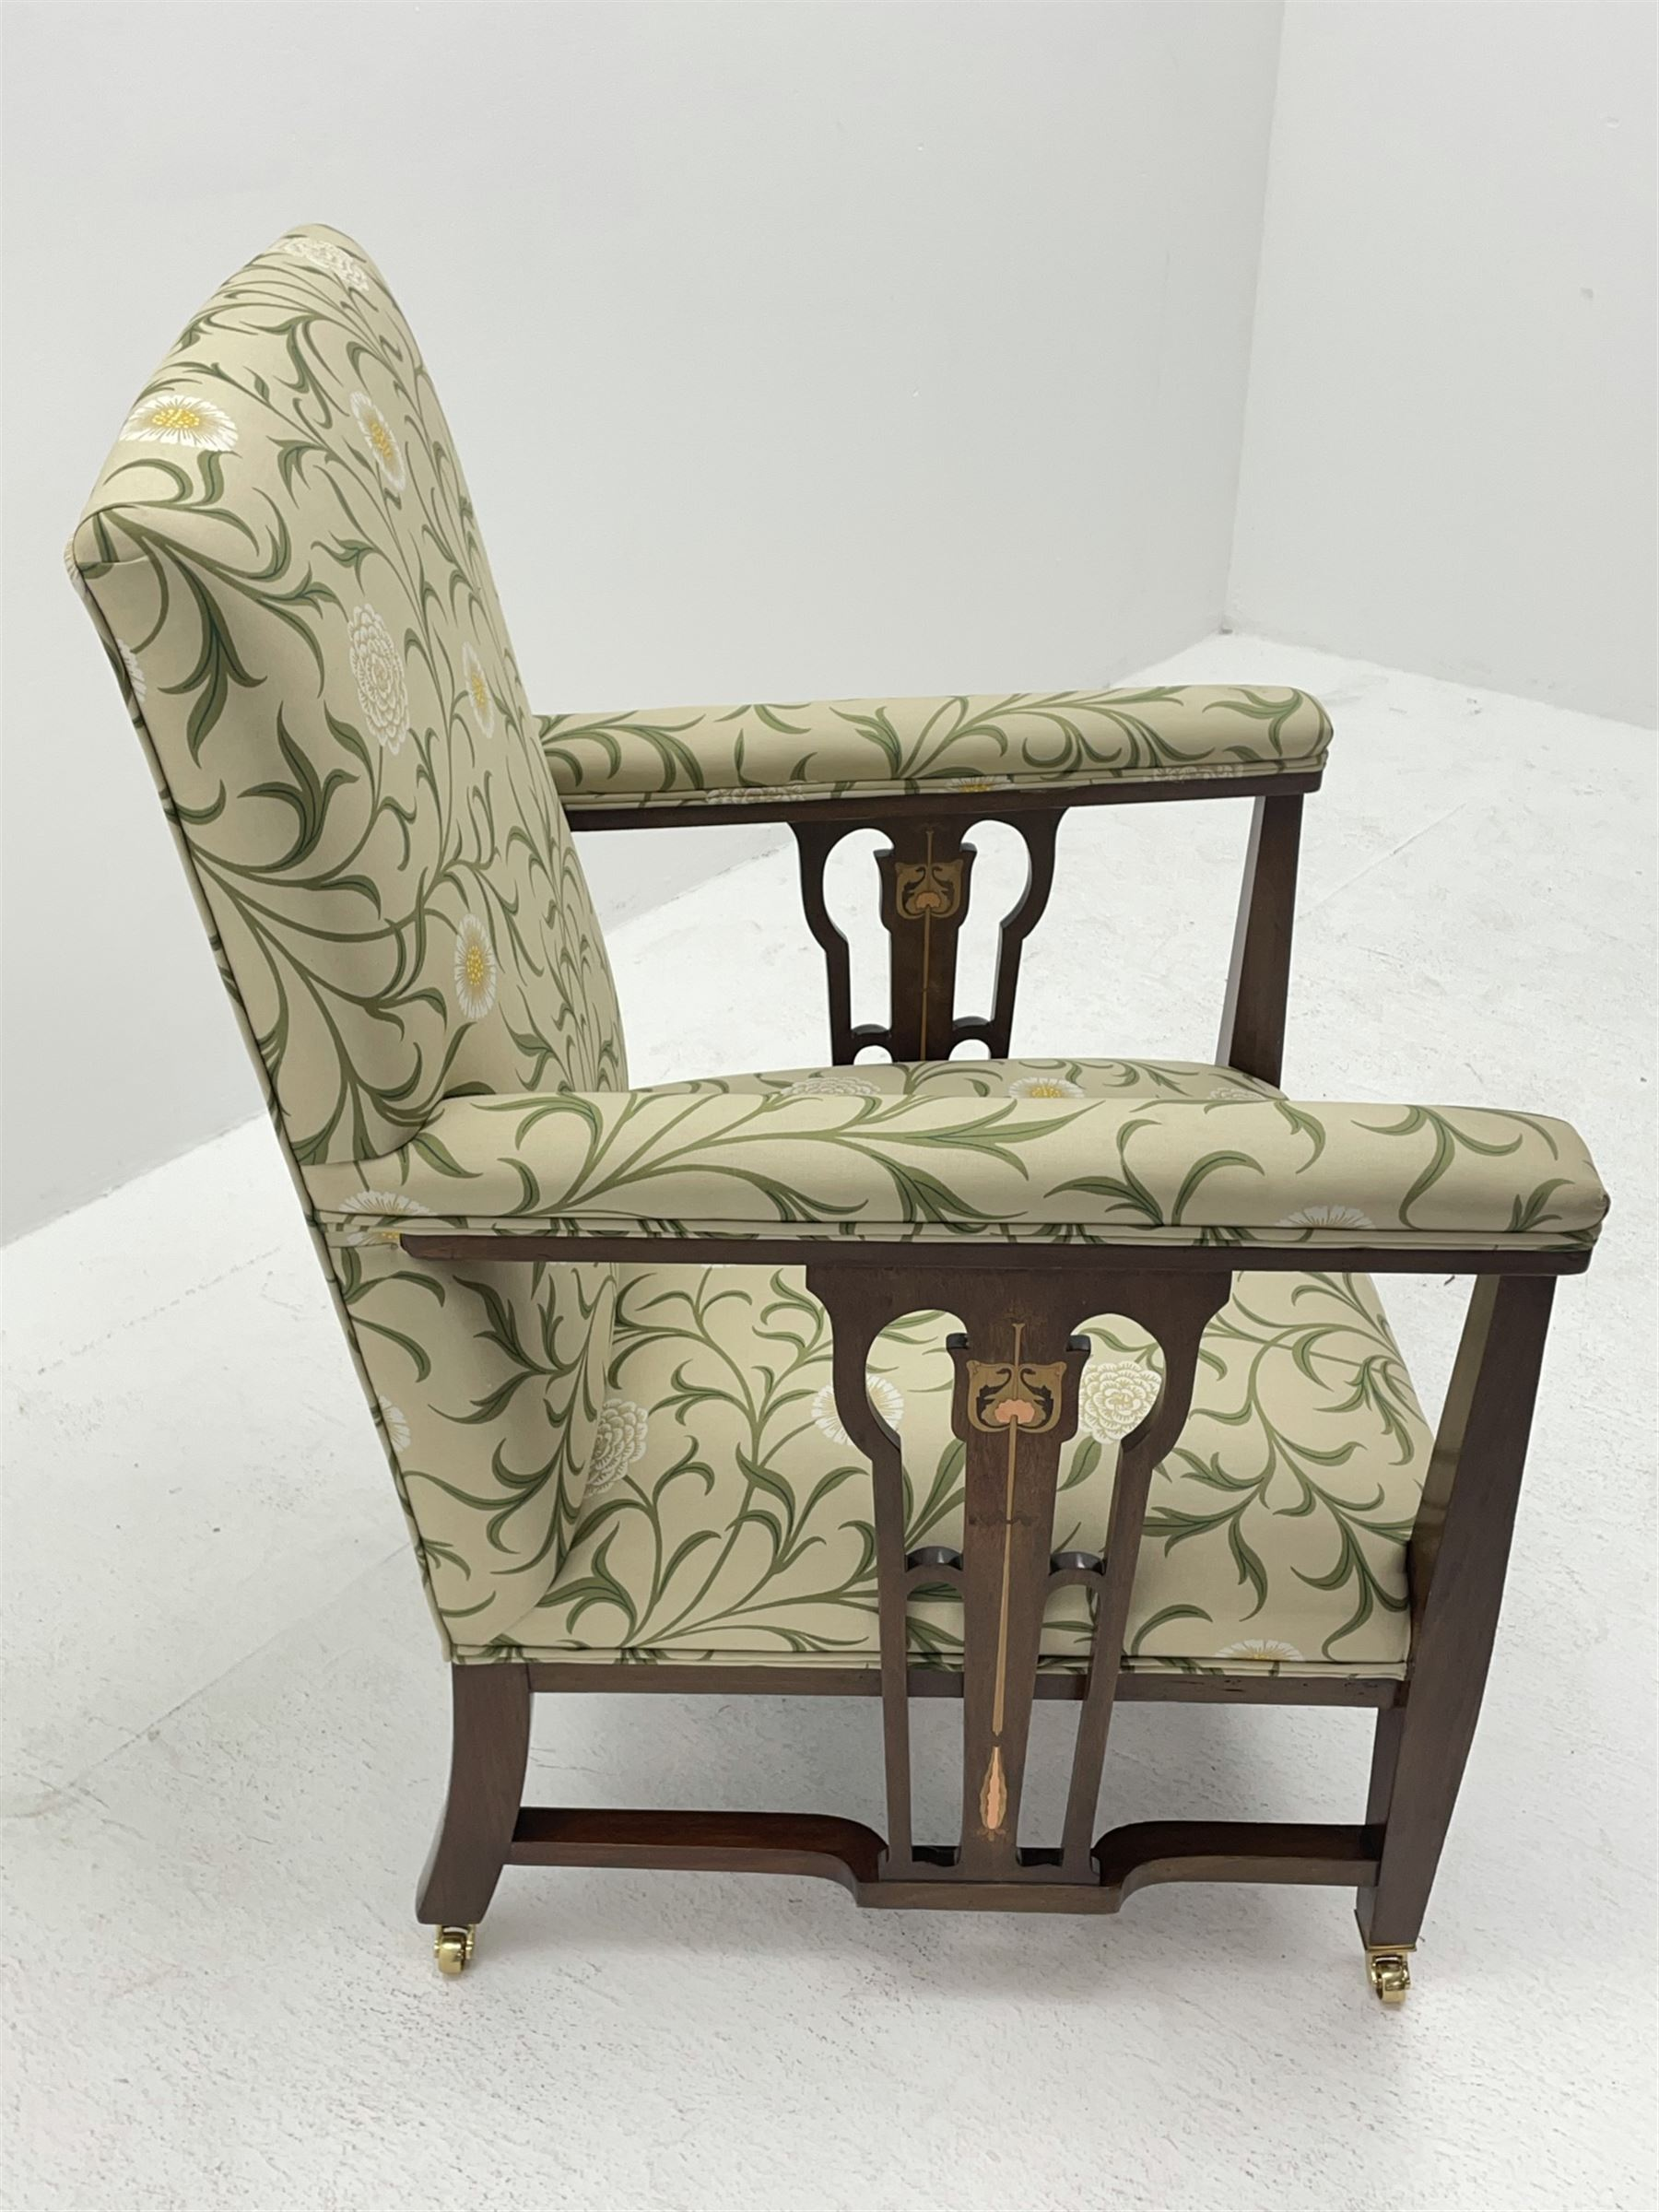 Late 19th century Arts and Crafts mahogany armchair - Image 7 of 7